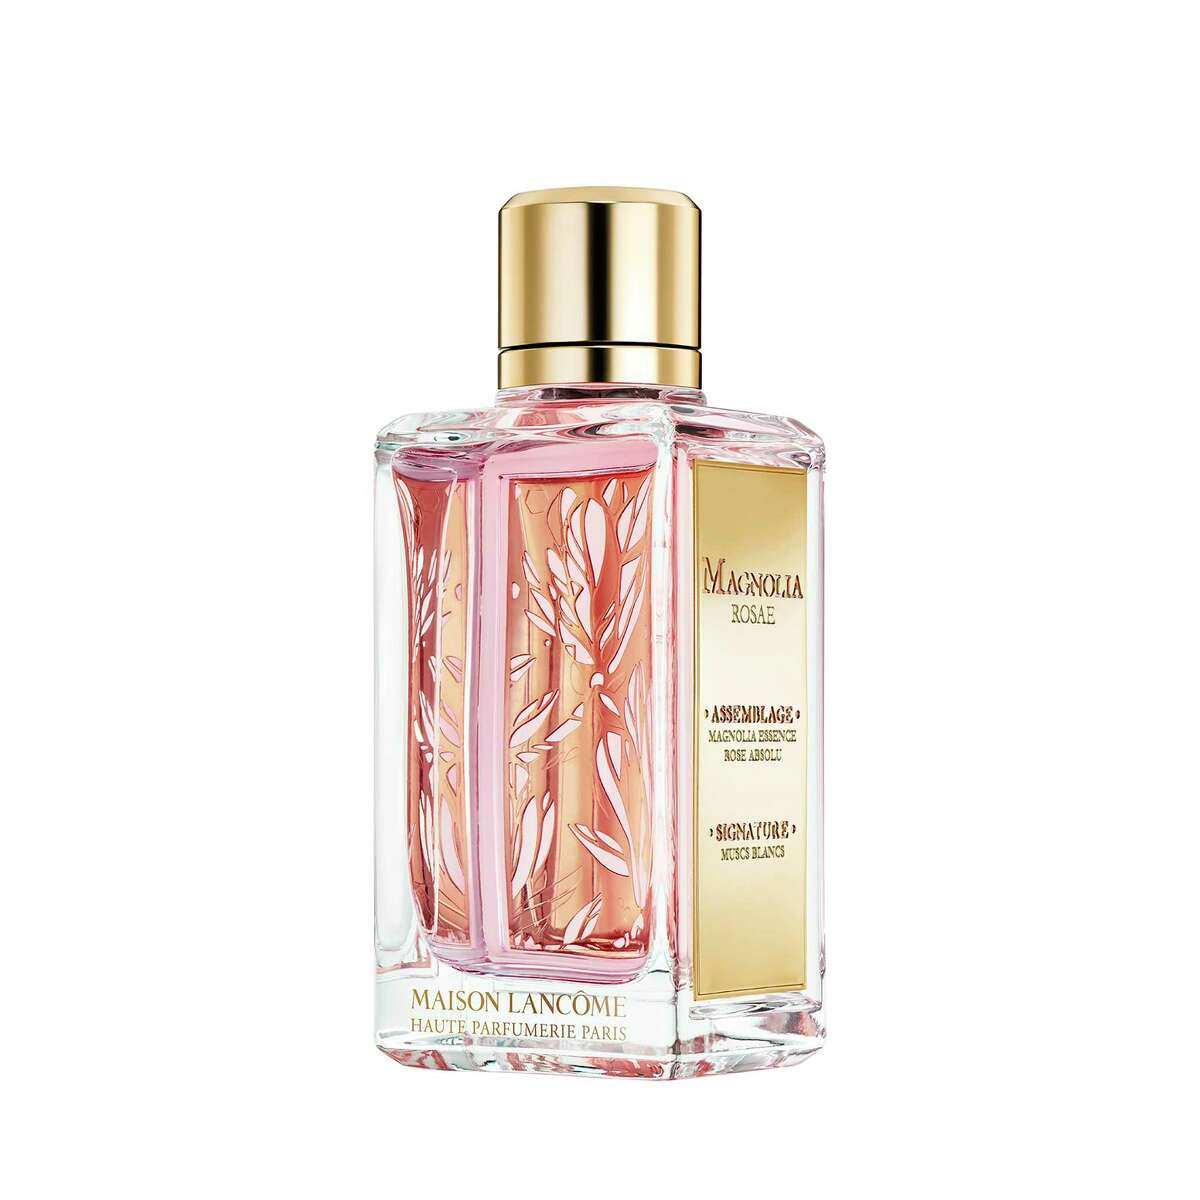 Maison Lancome's new collection of four new fragrances are inspired by French gardens including Magnolia Rosae that invests sensual magnolia with blackcurrant, freesia, Turkish rose and white musks; $175 at Saks Fifth Avenue and Neiman Marcus.